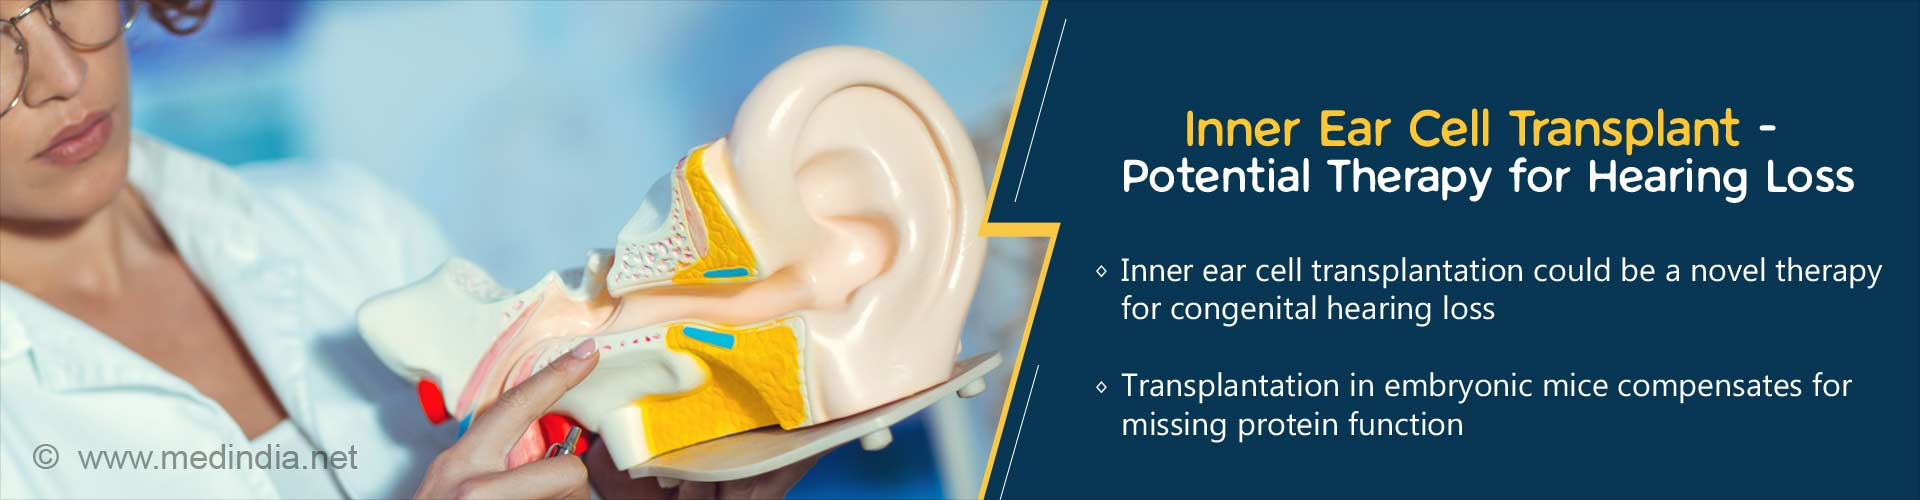 Inner Ear Cell Transplant - Potential Therapy for Hearing Loss